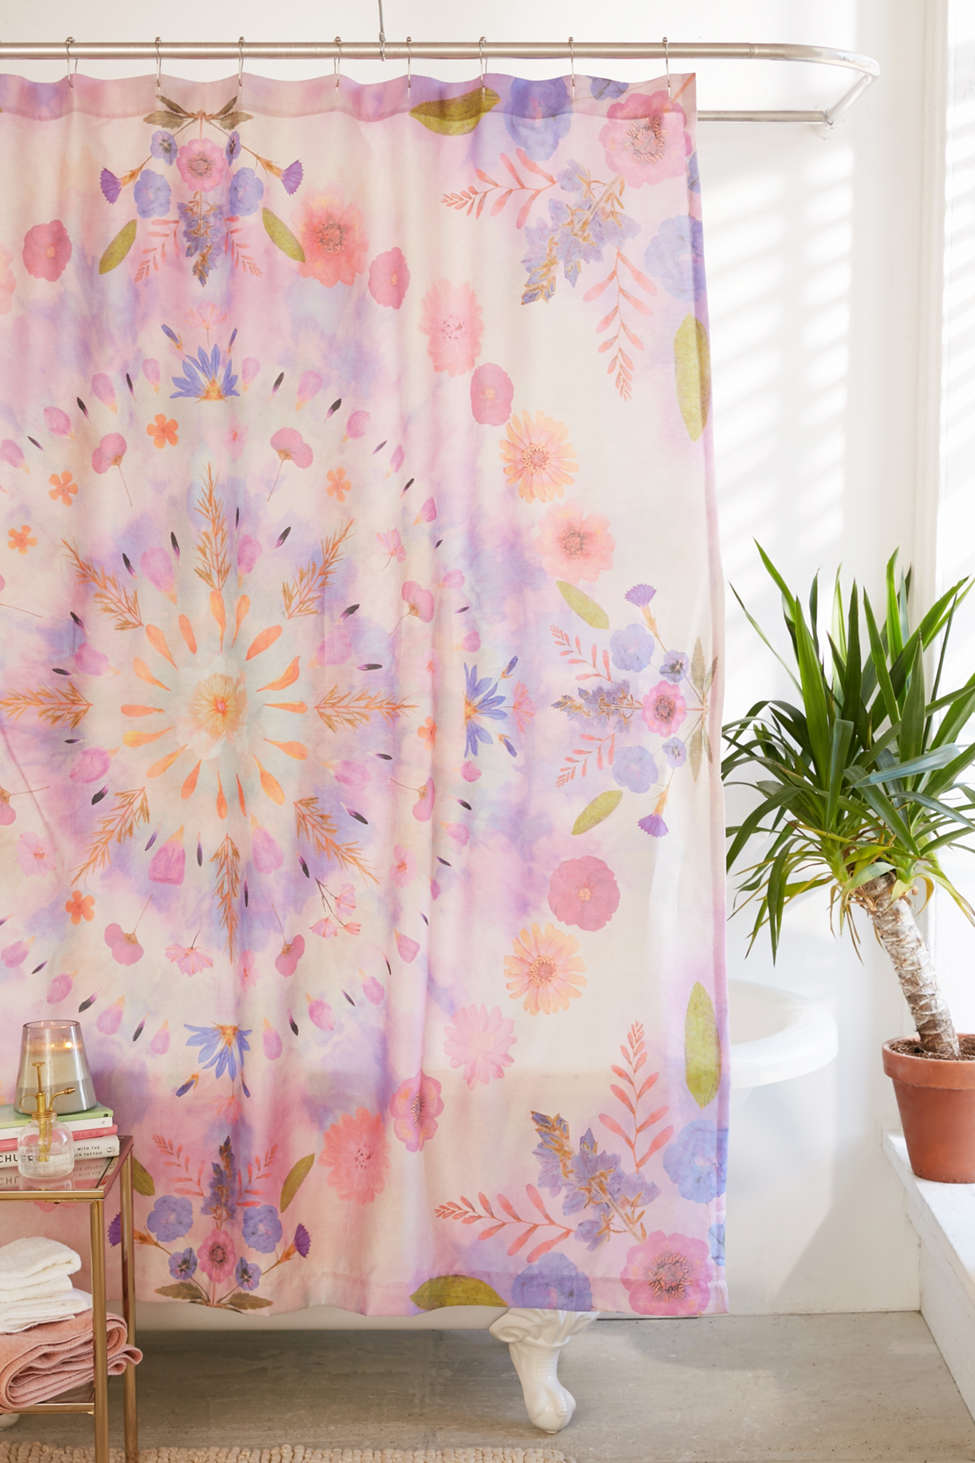 Slide View: 1: Pressed Floral Shower Curtain